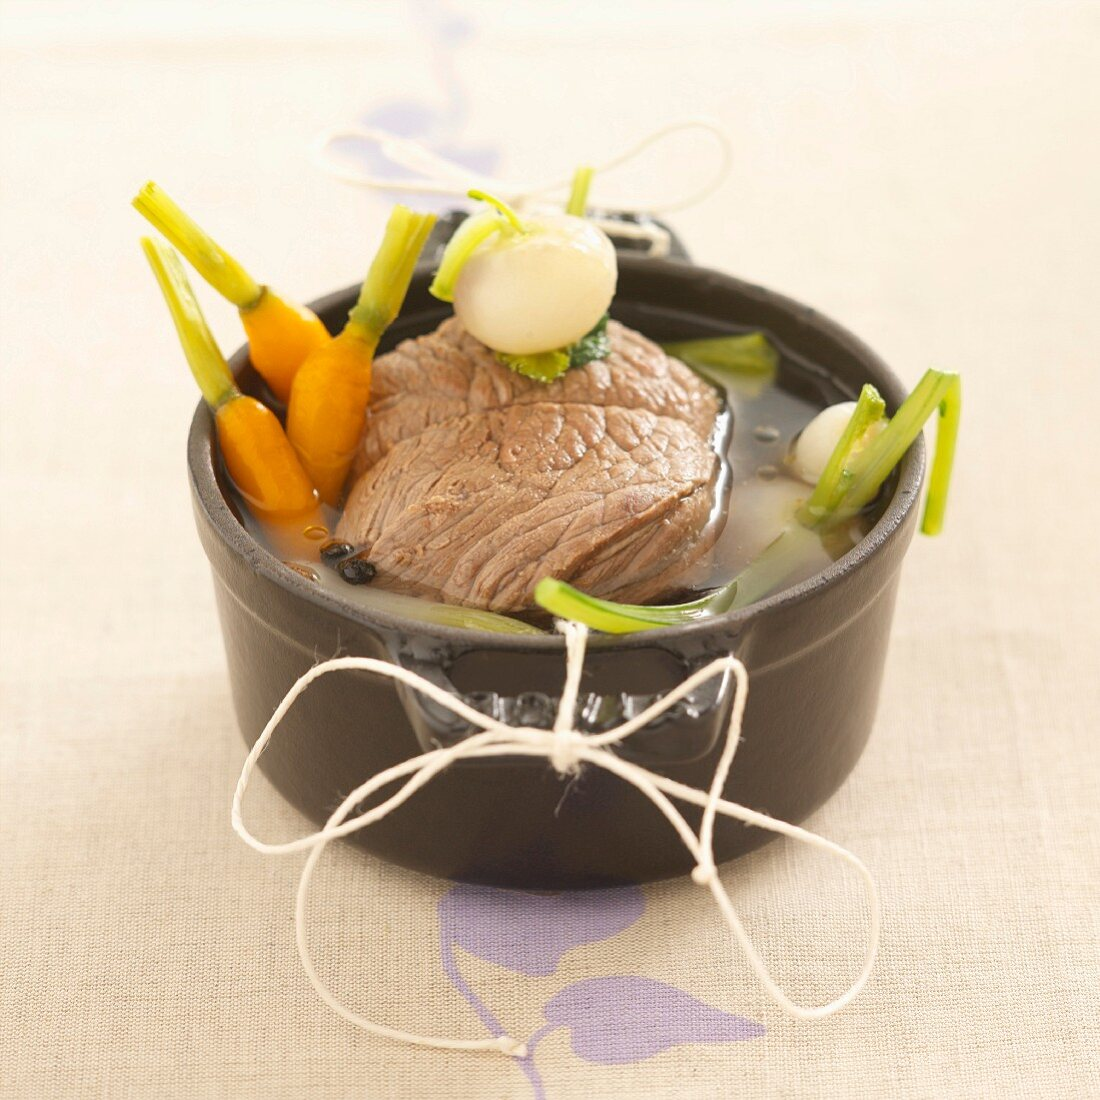 Boiled beef (tied with kitchen twine) with soup vegetables